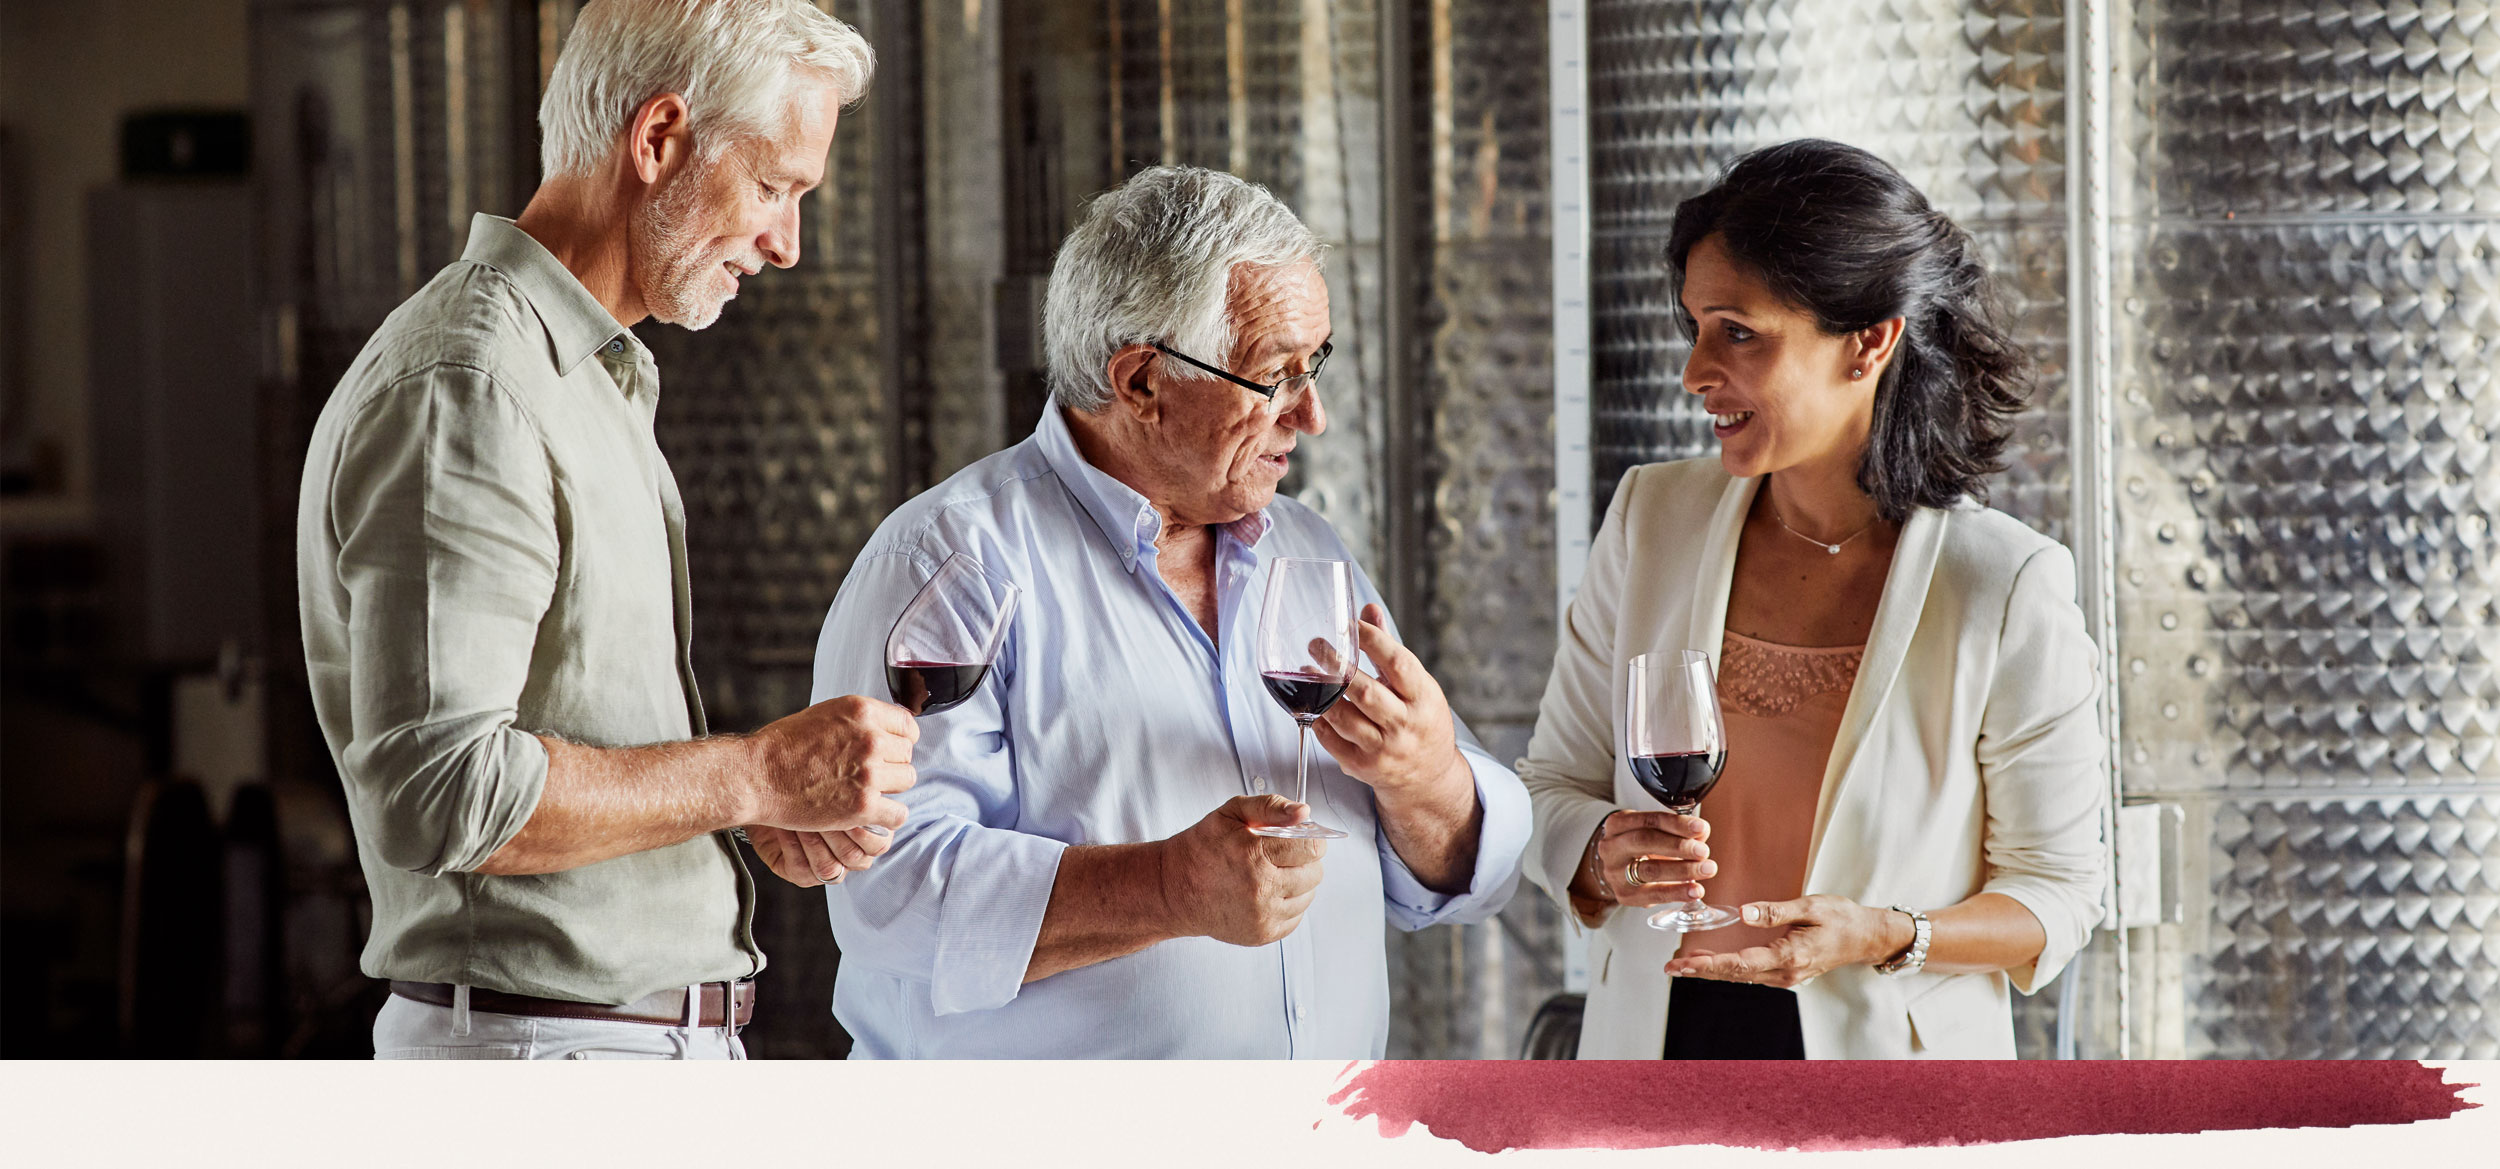 Tasting and blending wines with experts like Daniel Llose